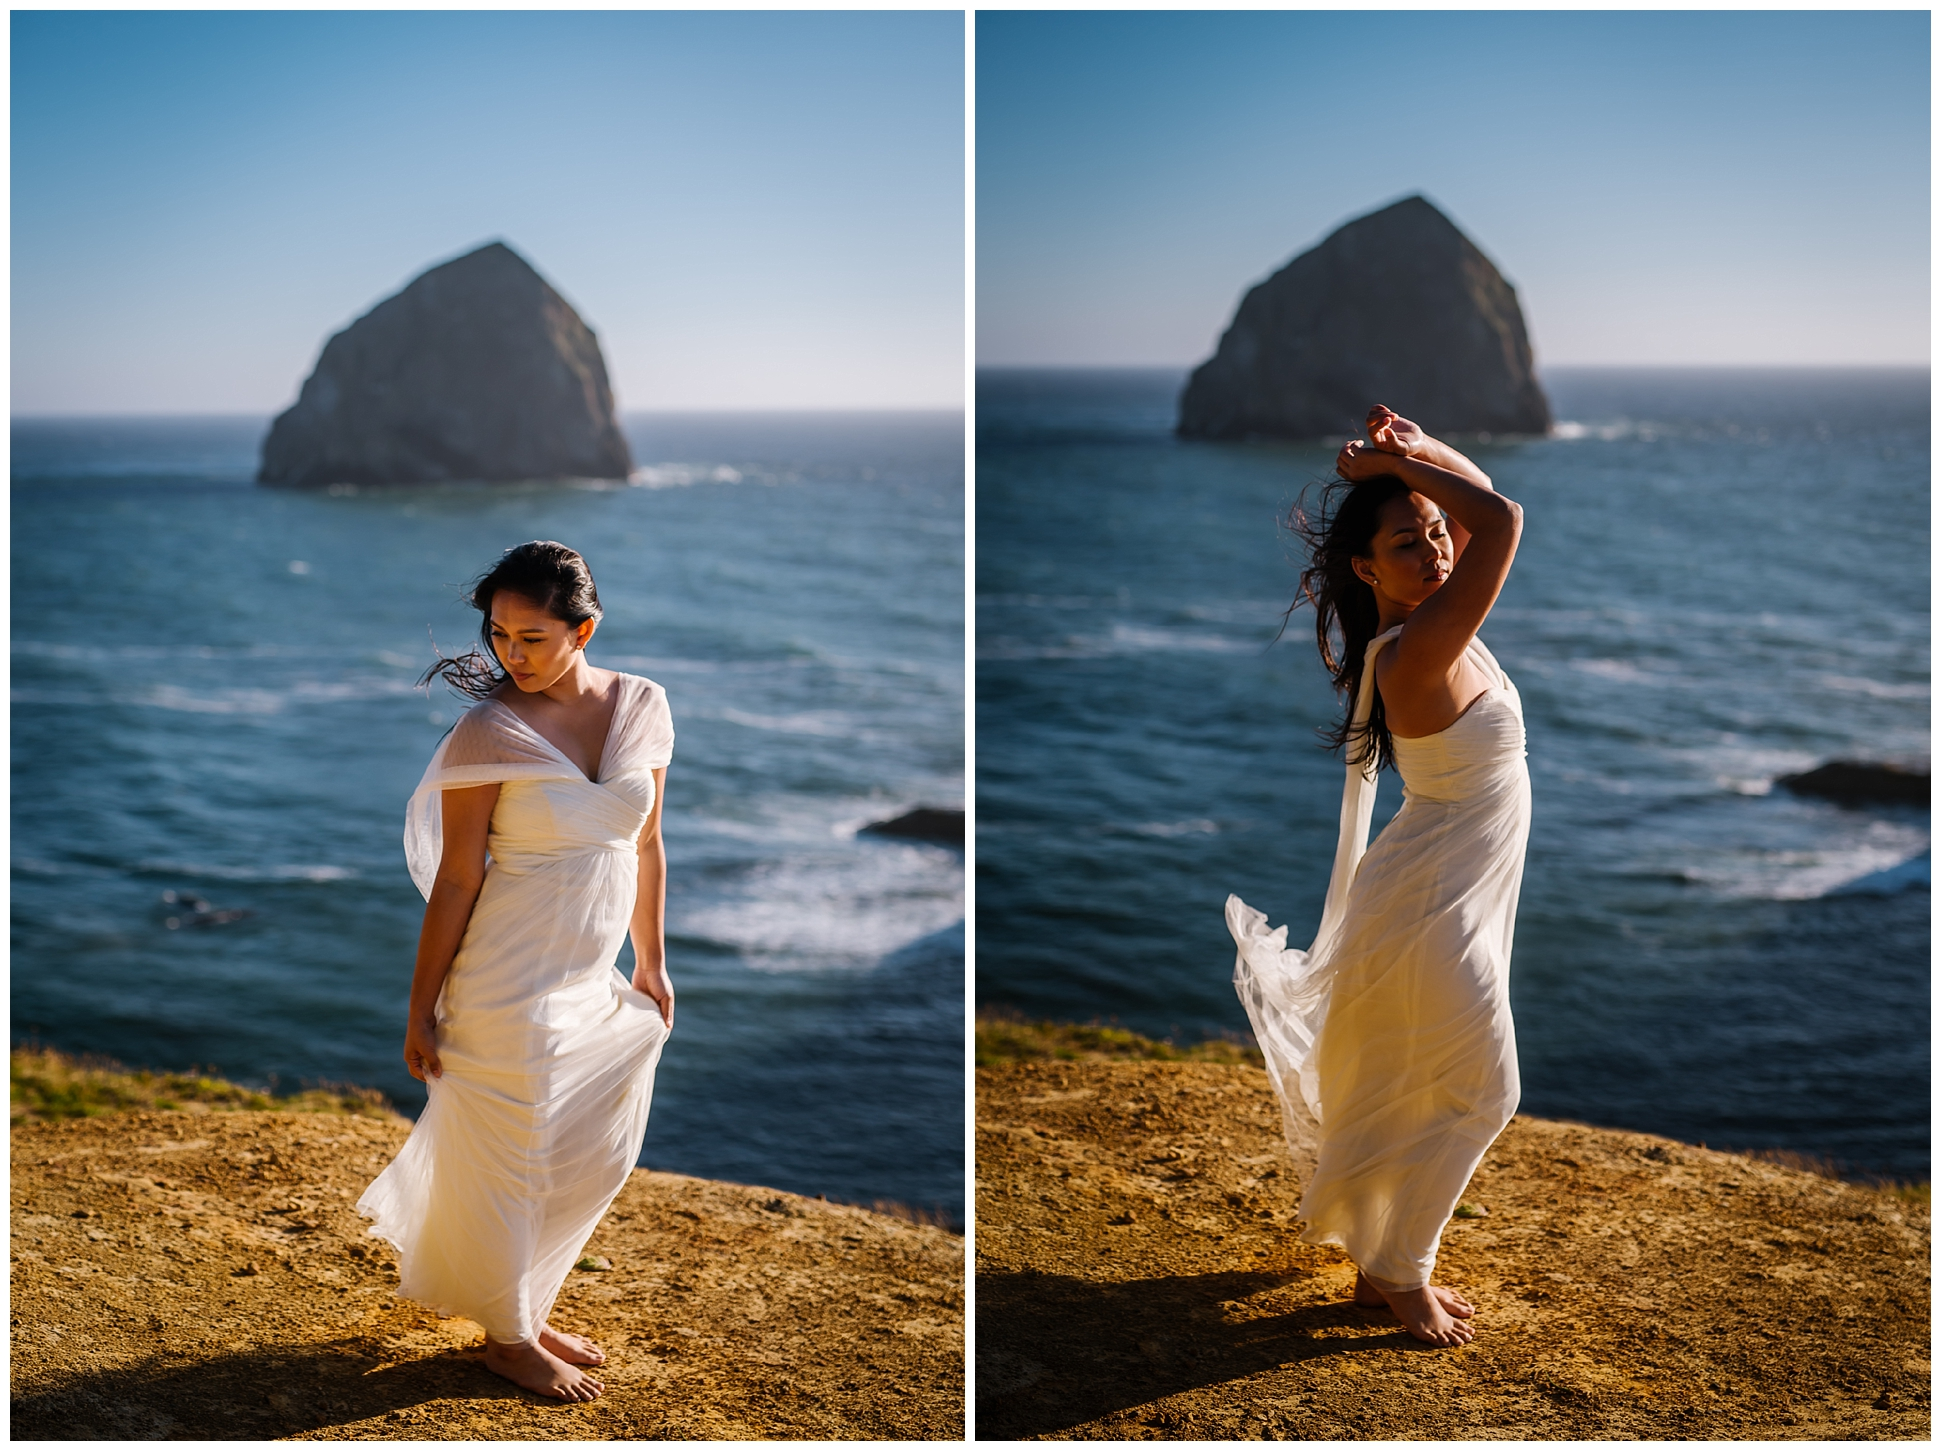 Cape-kiwanda-bridal-portrait-destination-wedding-photographer_0019.jpg